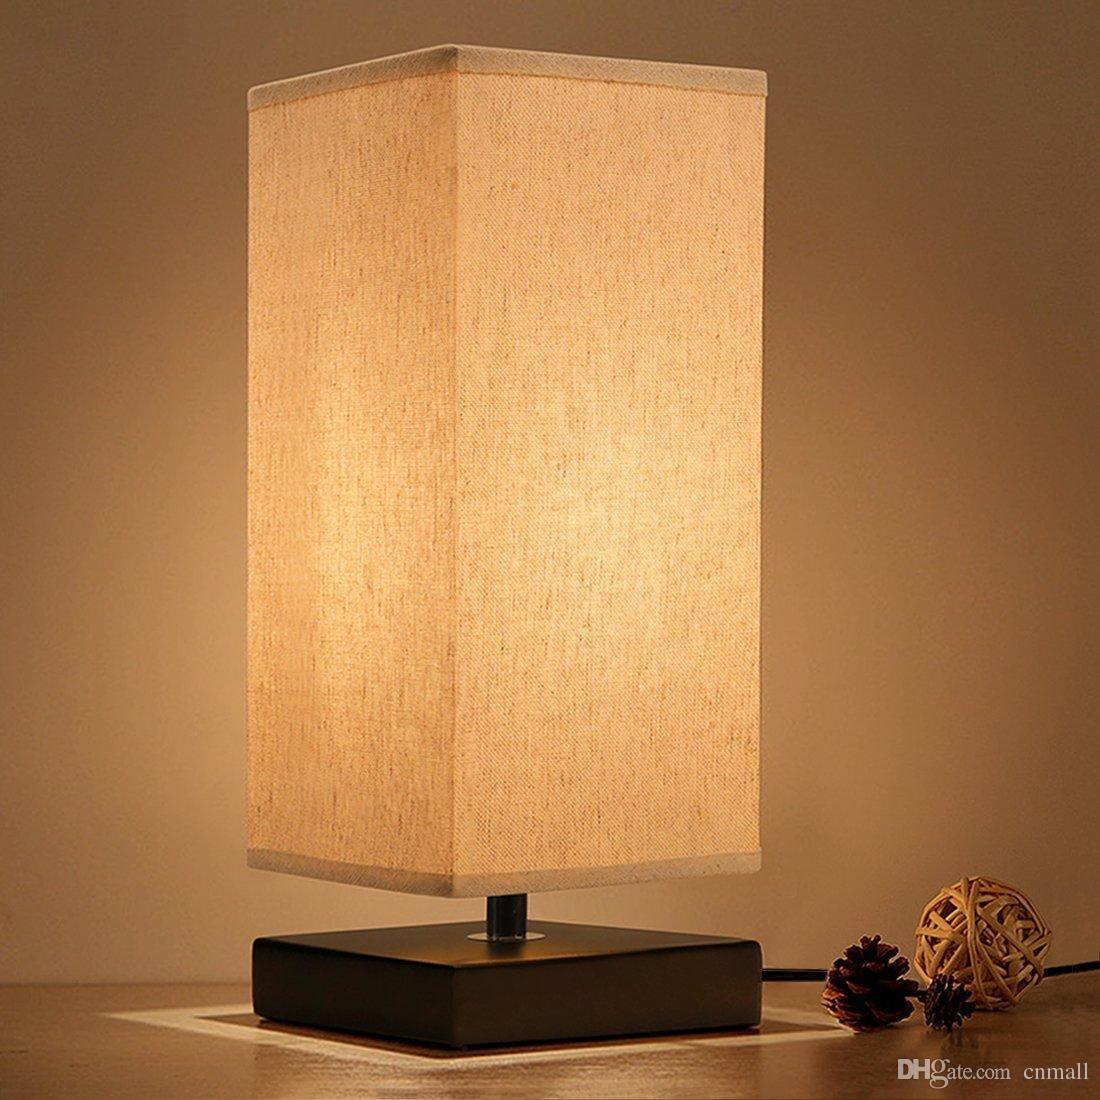 Bedside Table Lamp Minimalist Solid Wood Table Night Light Bedside Desk Lamp Simple Desk Lamps Round Nightstand Lamp With Fabric Shade Canada 2021 From Cnmall Cad 31 60 Dhgate Canada